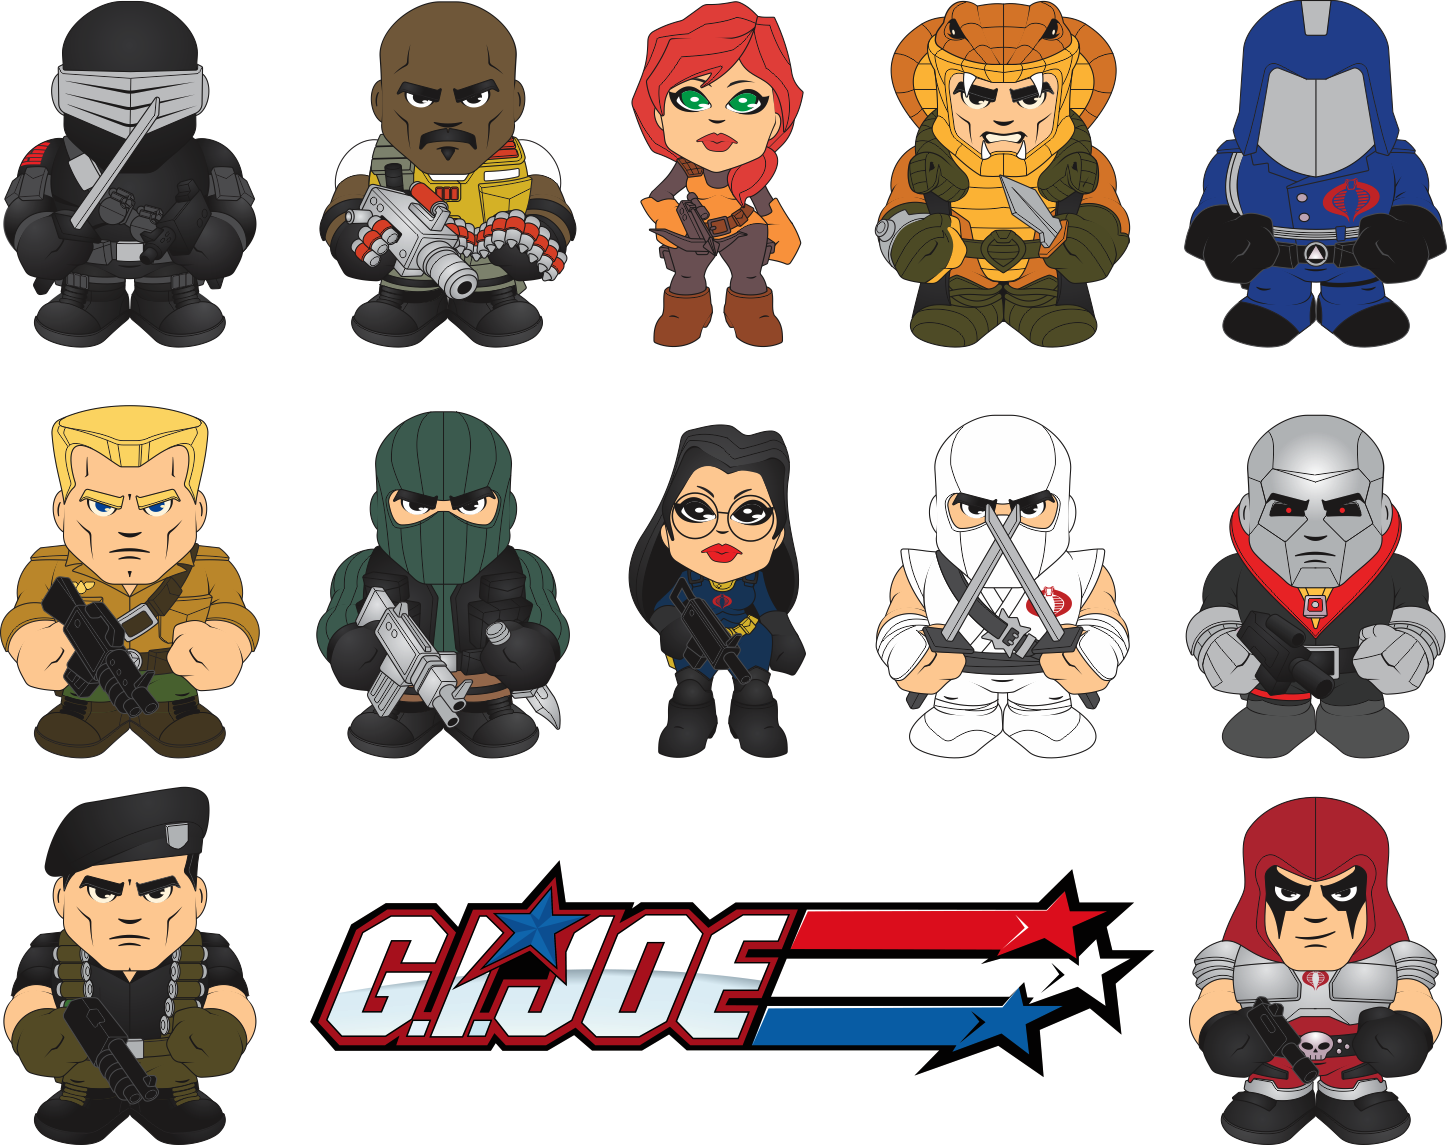 GI Joe Classic Mini Figure Design by BurningEyeStudios on DeviantArt